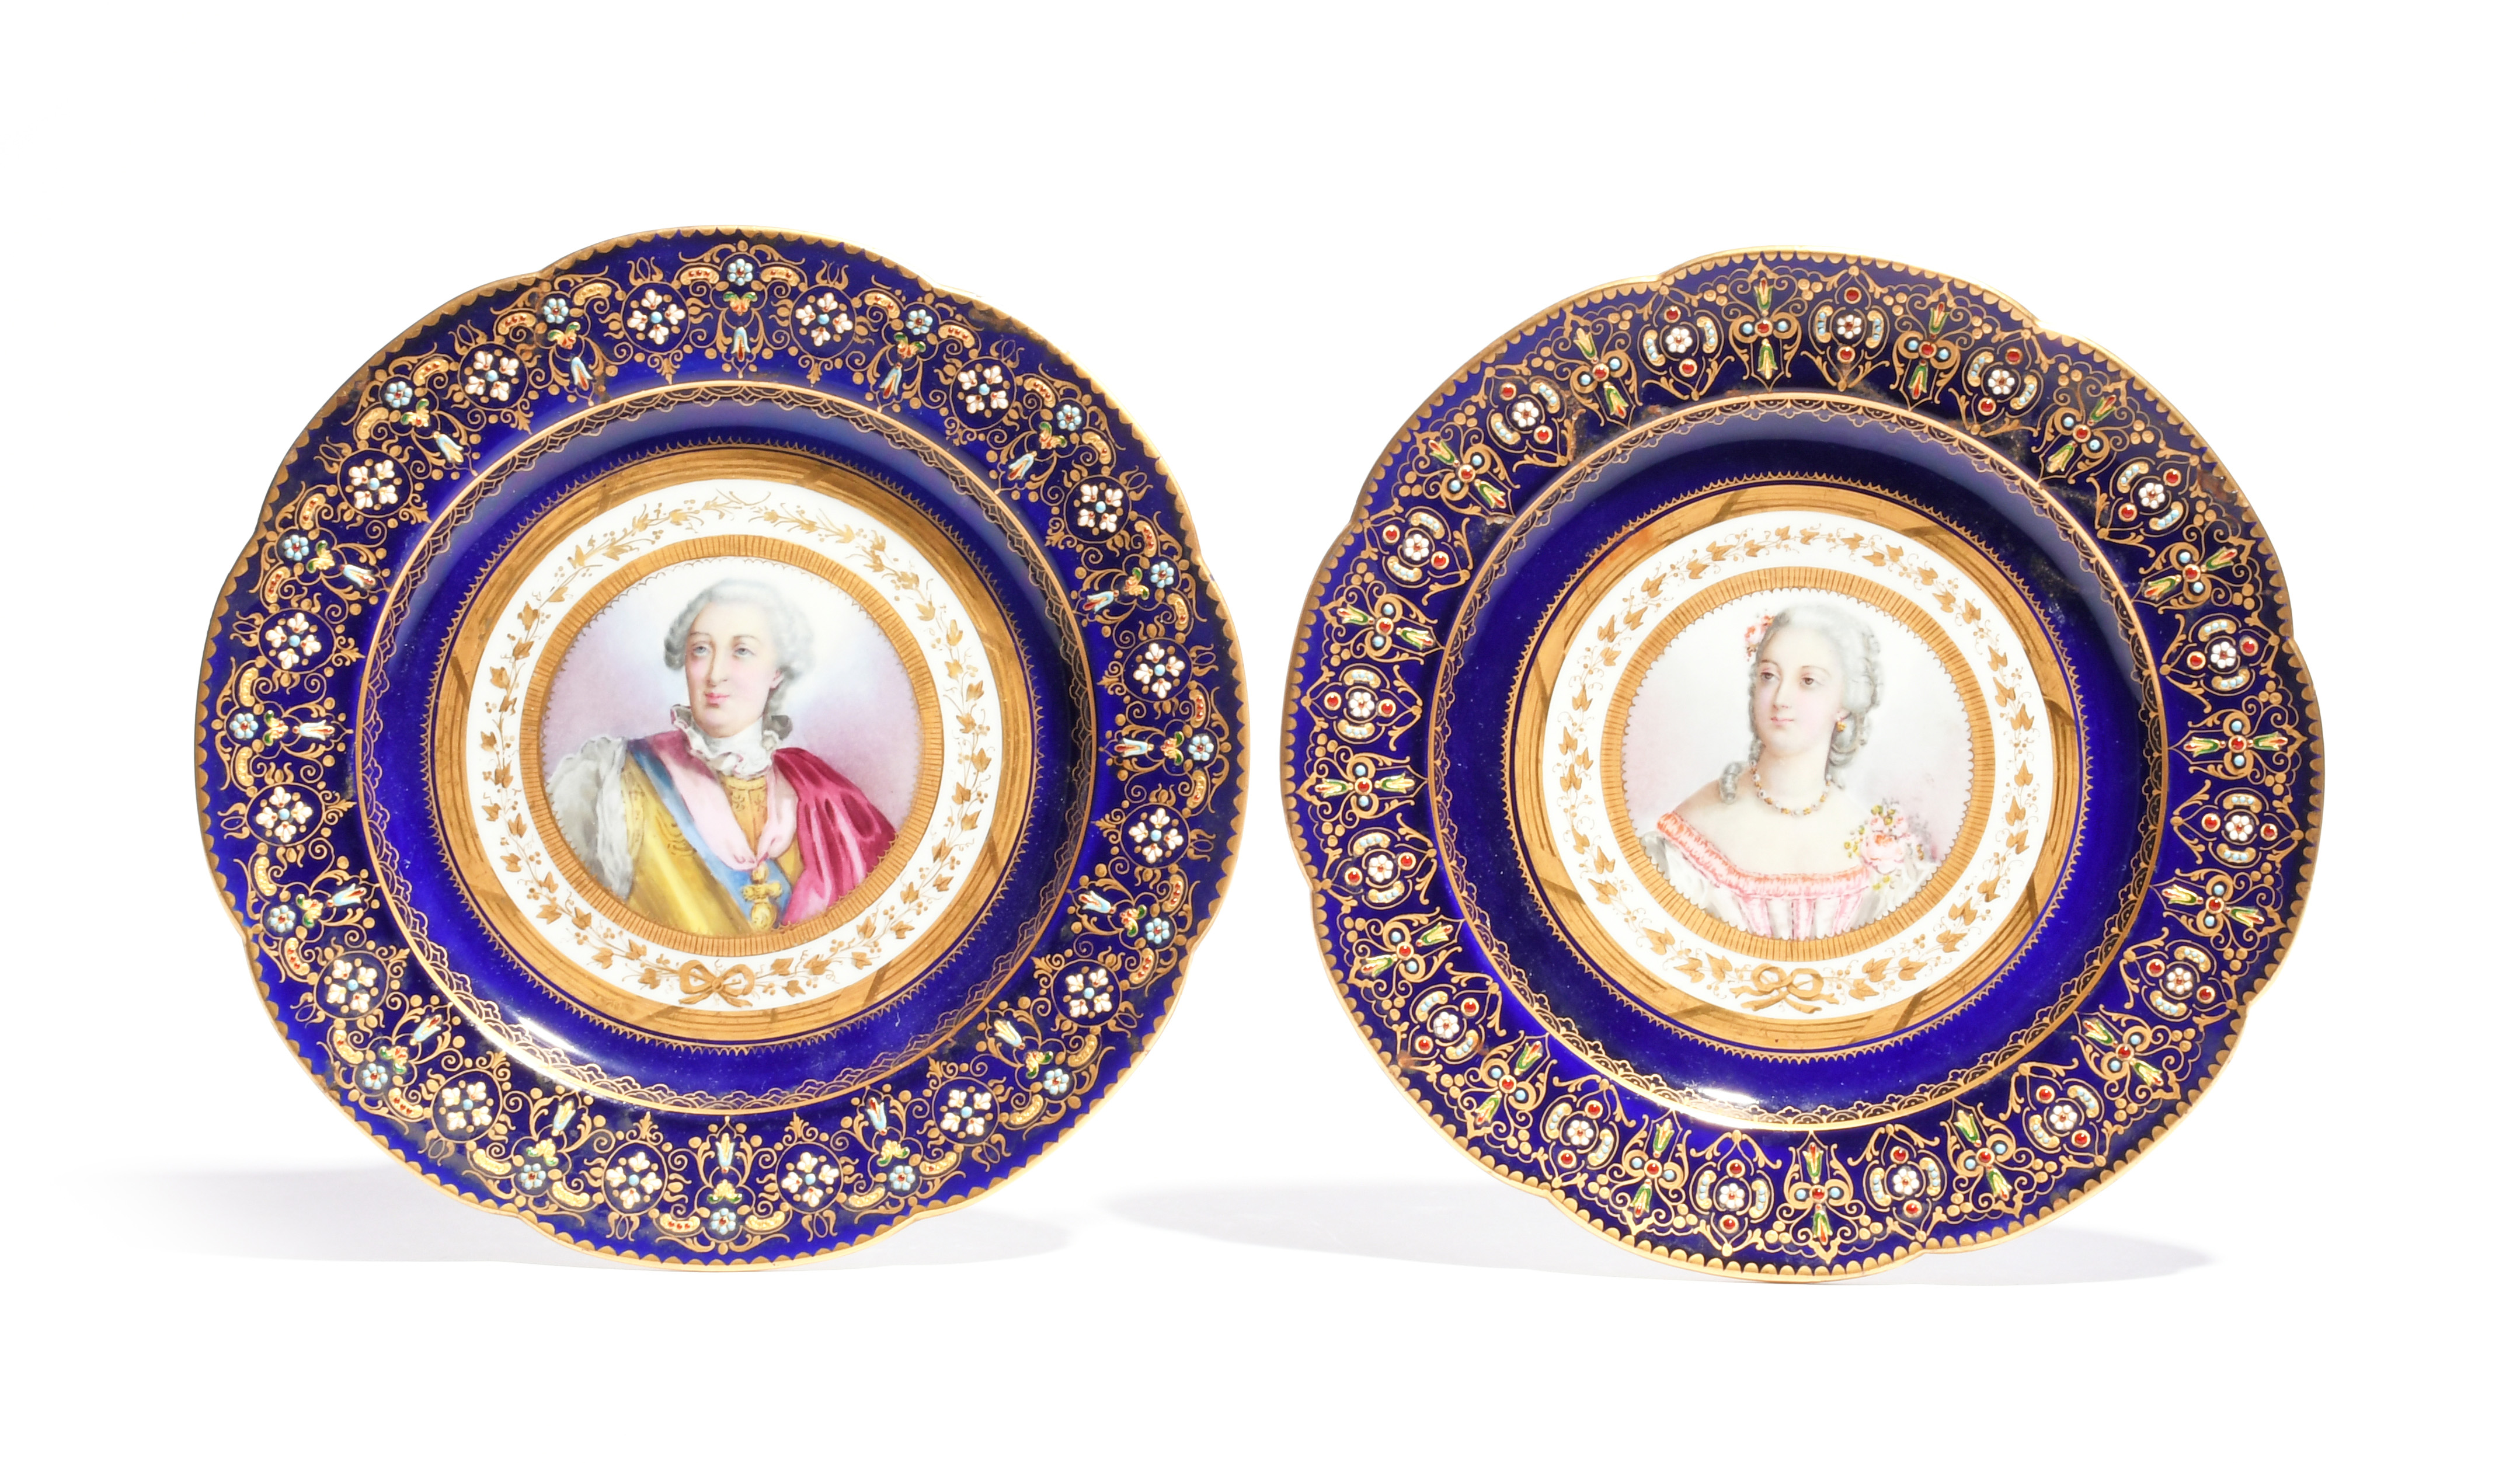 A pair of Sèvres-style cabinet plates late 19th century, painted with portraits of Louis XV and